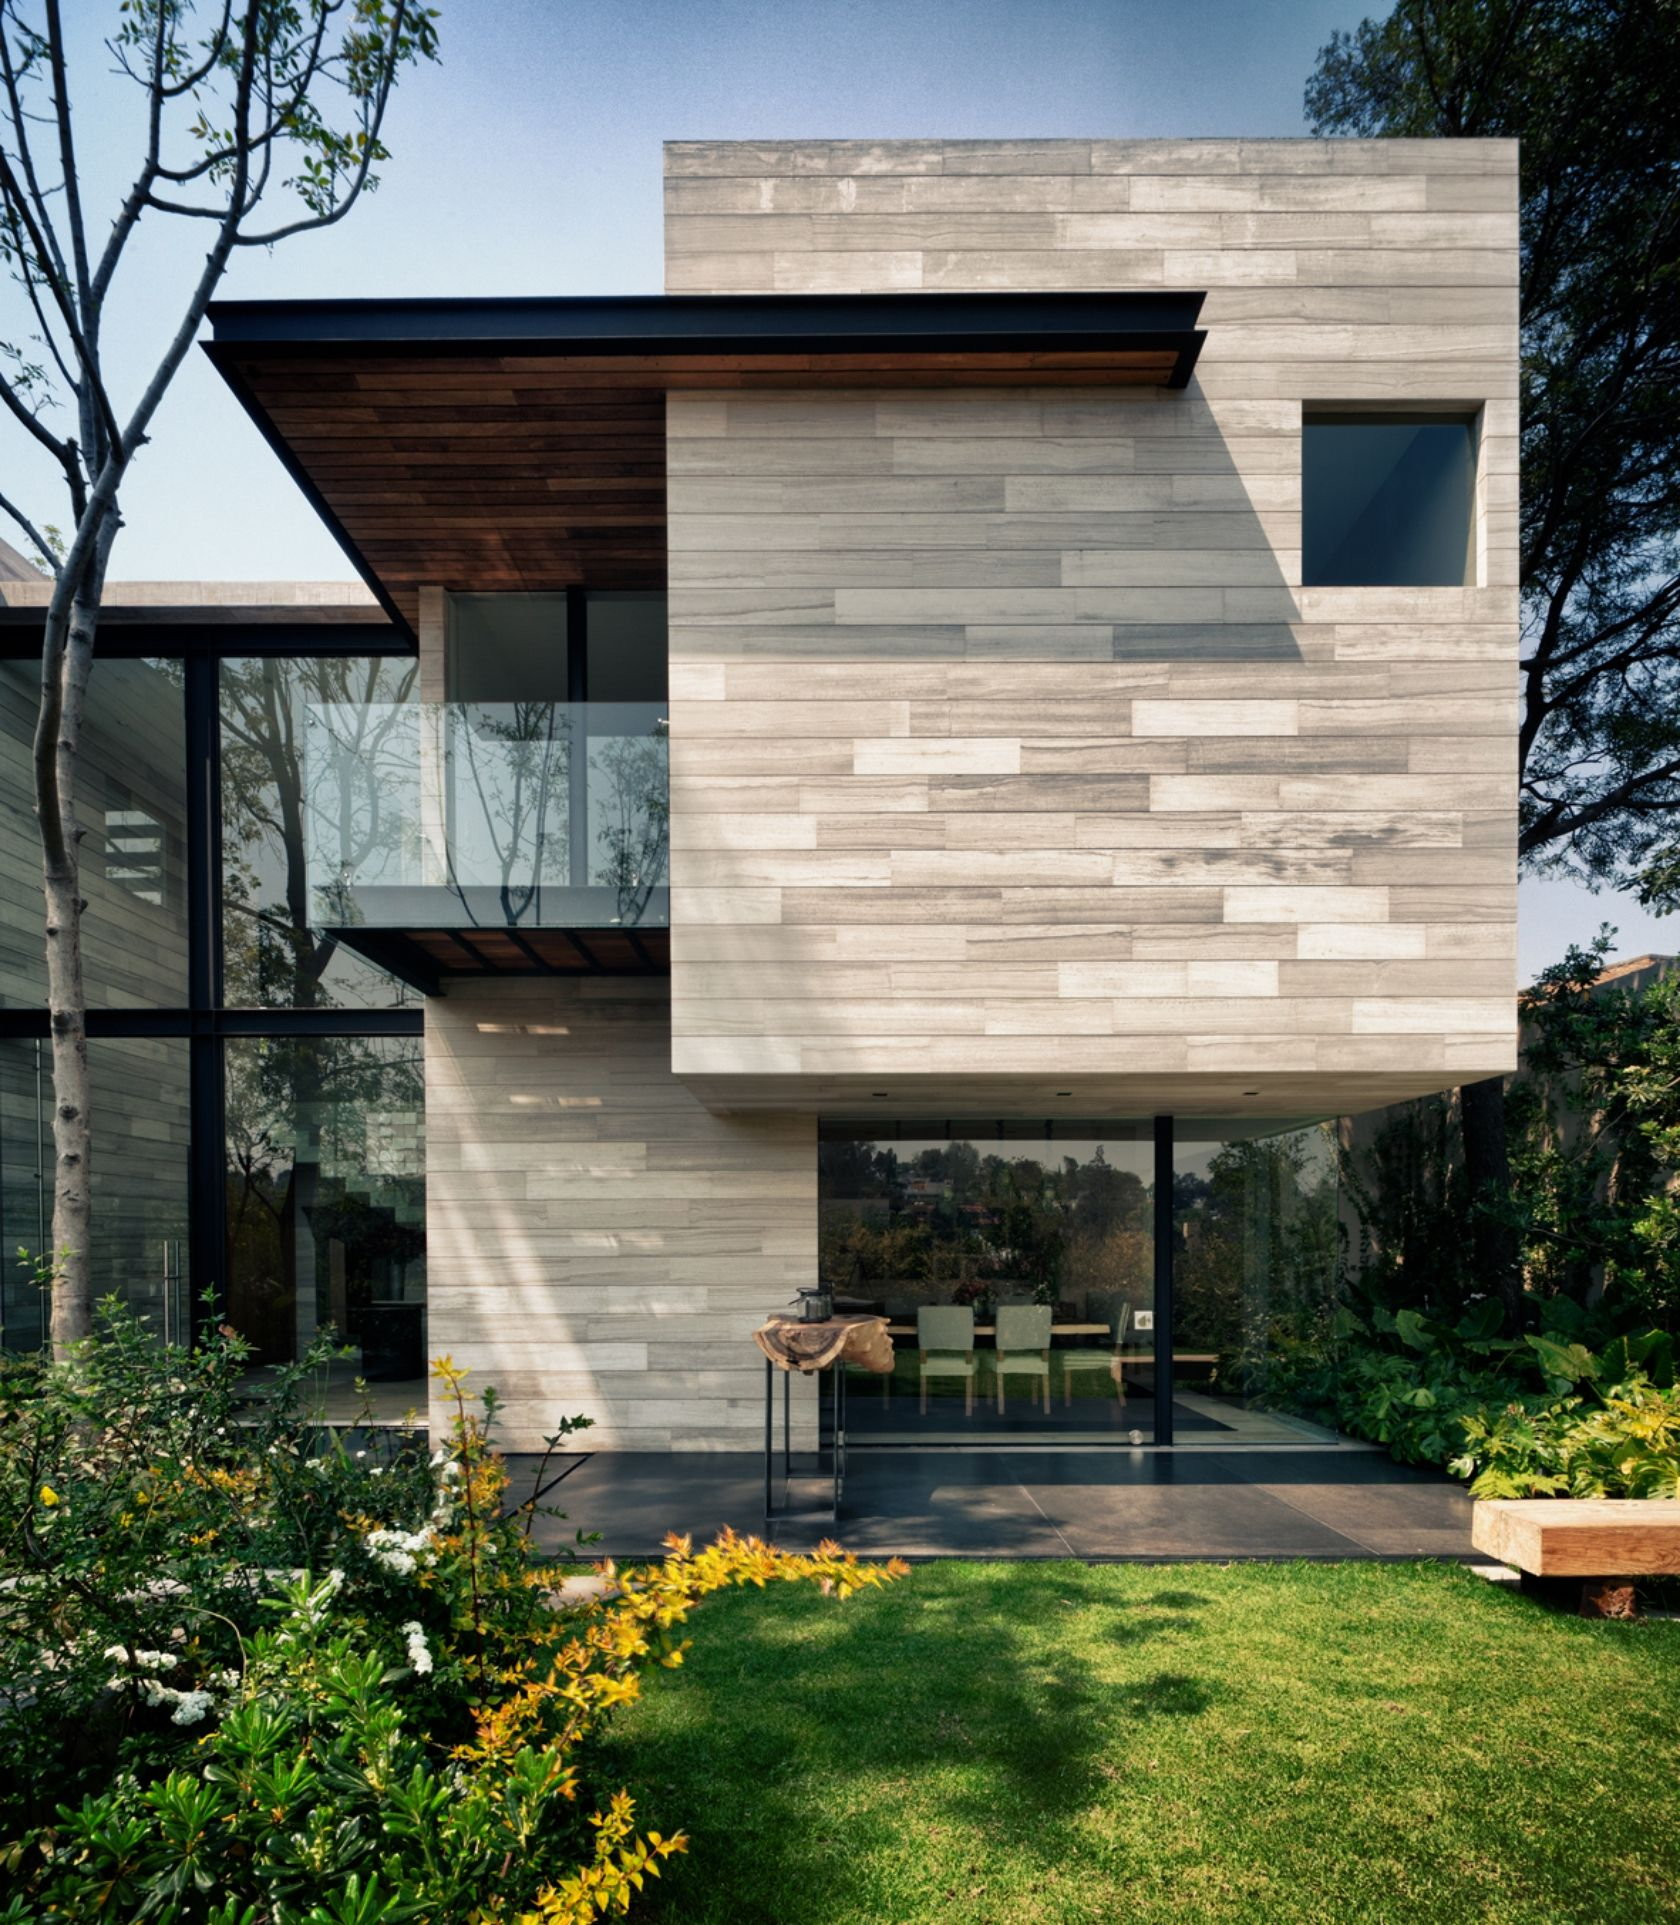 18 Awe Inspiring Modern Home Exterior Designs That Look Casual: Explore, Collect And Source Architecture